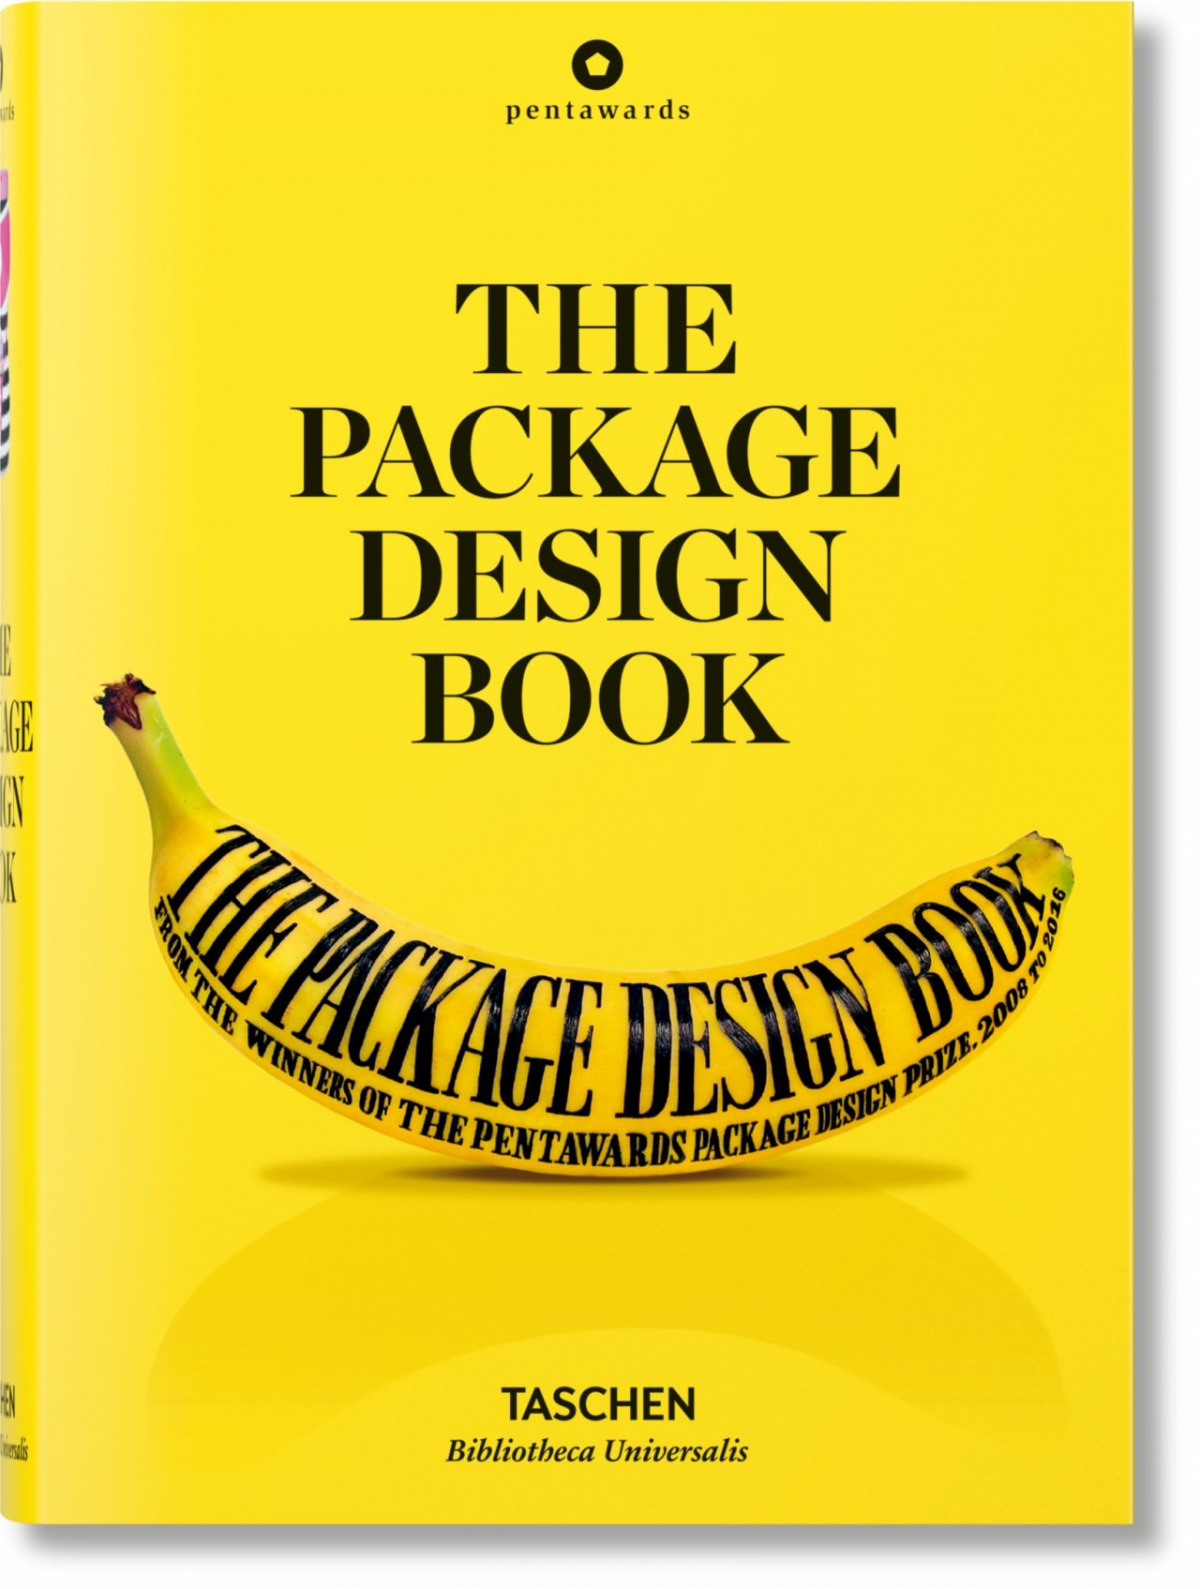 THE PACKAGE DESUFB BOOK